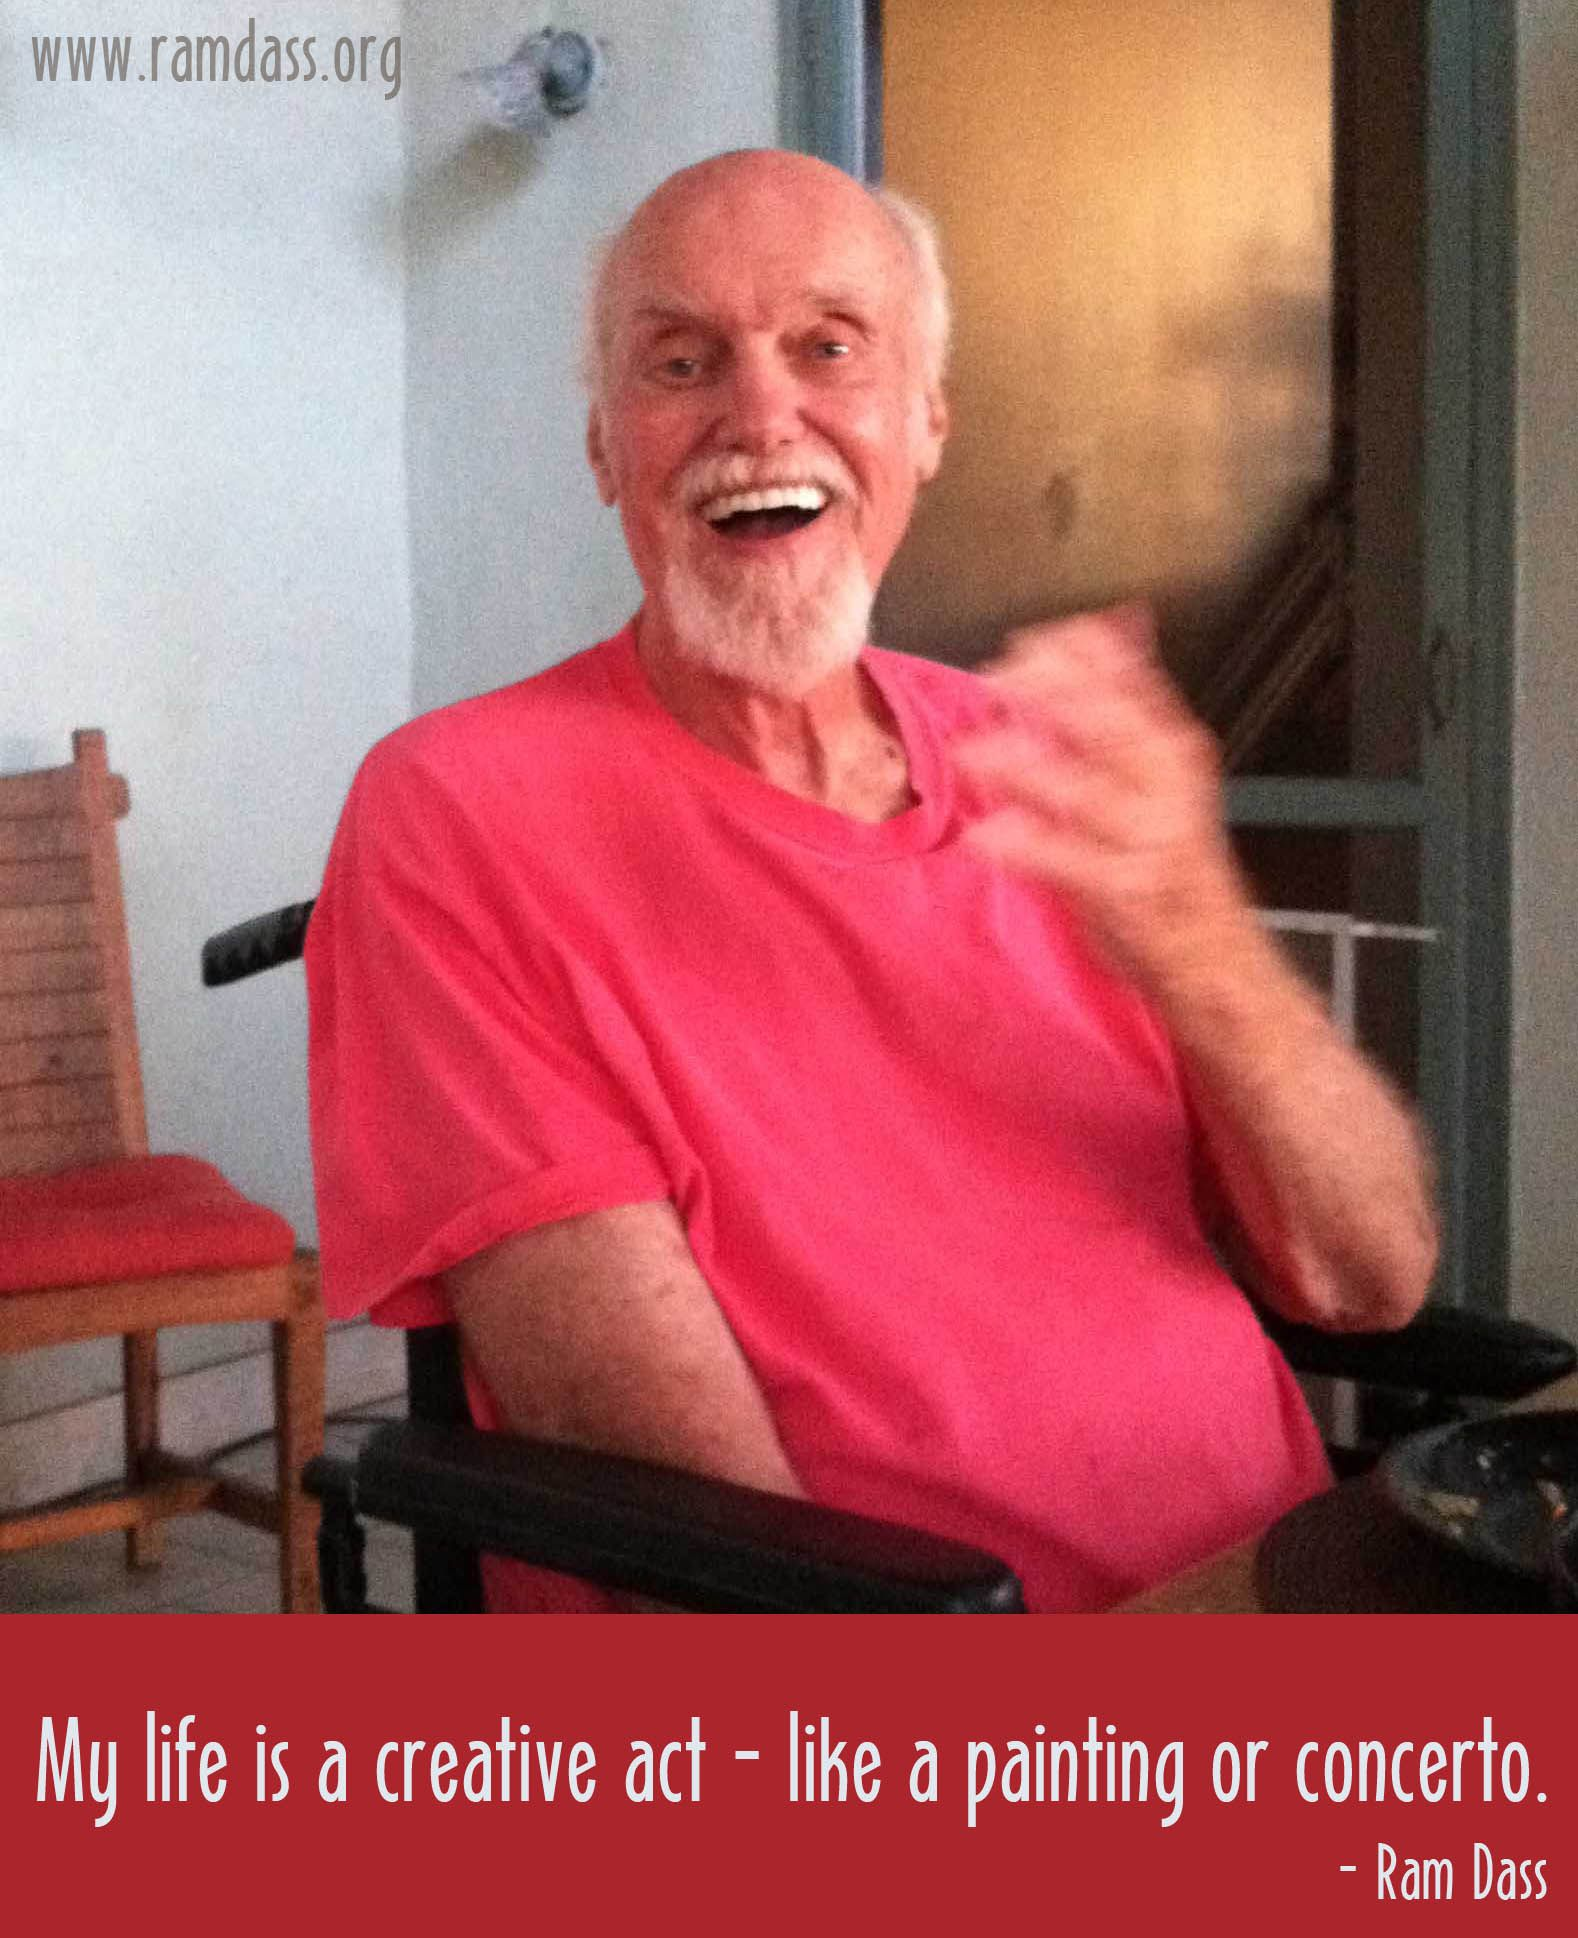 Ram Dass: My life is a creative act - like a painting or a concerto.